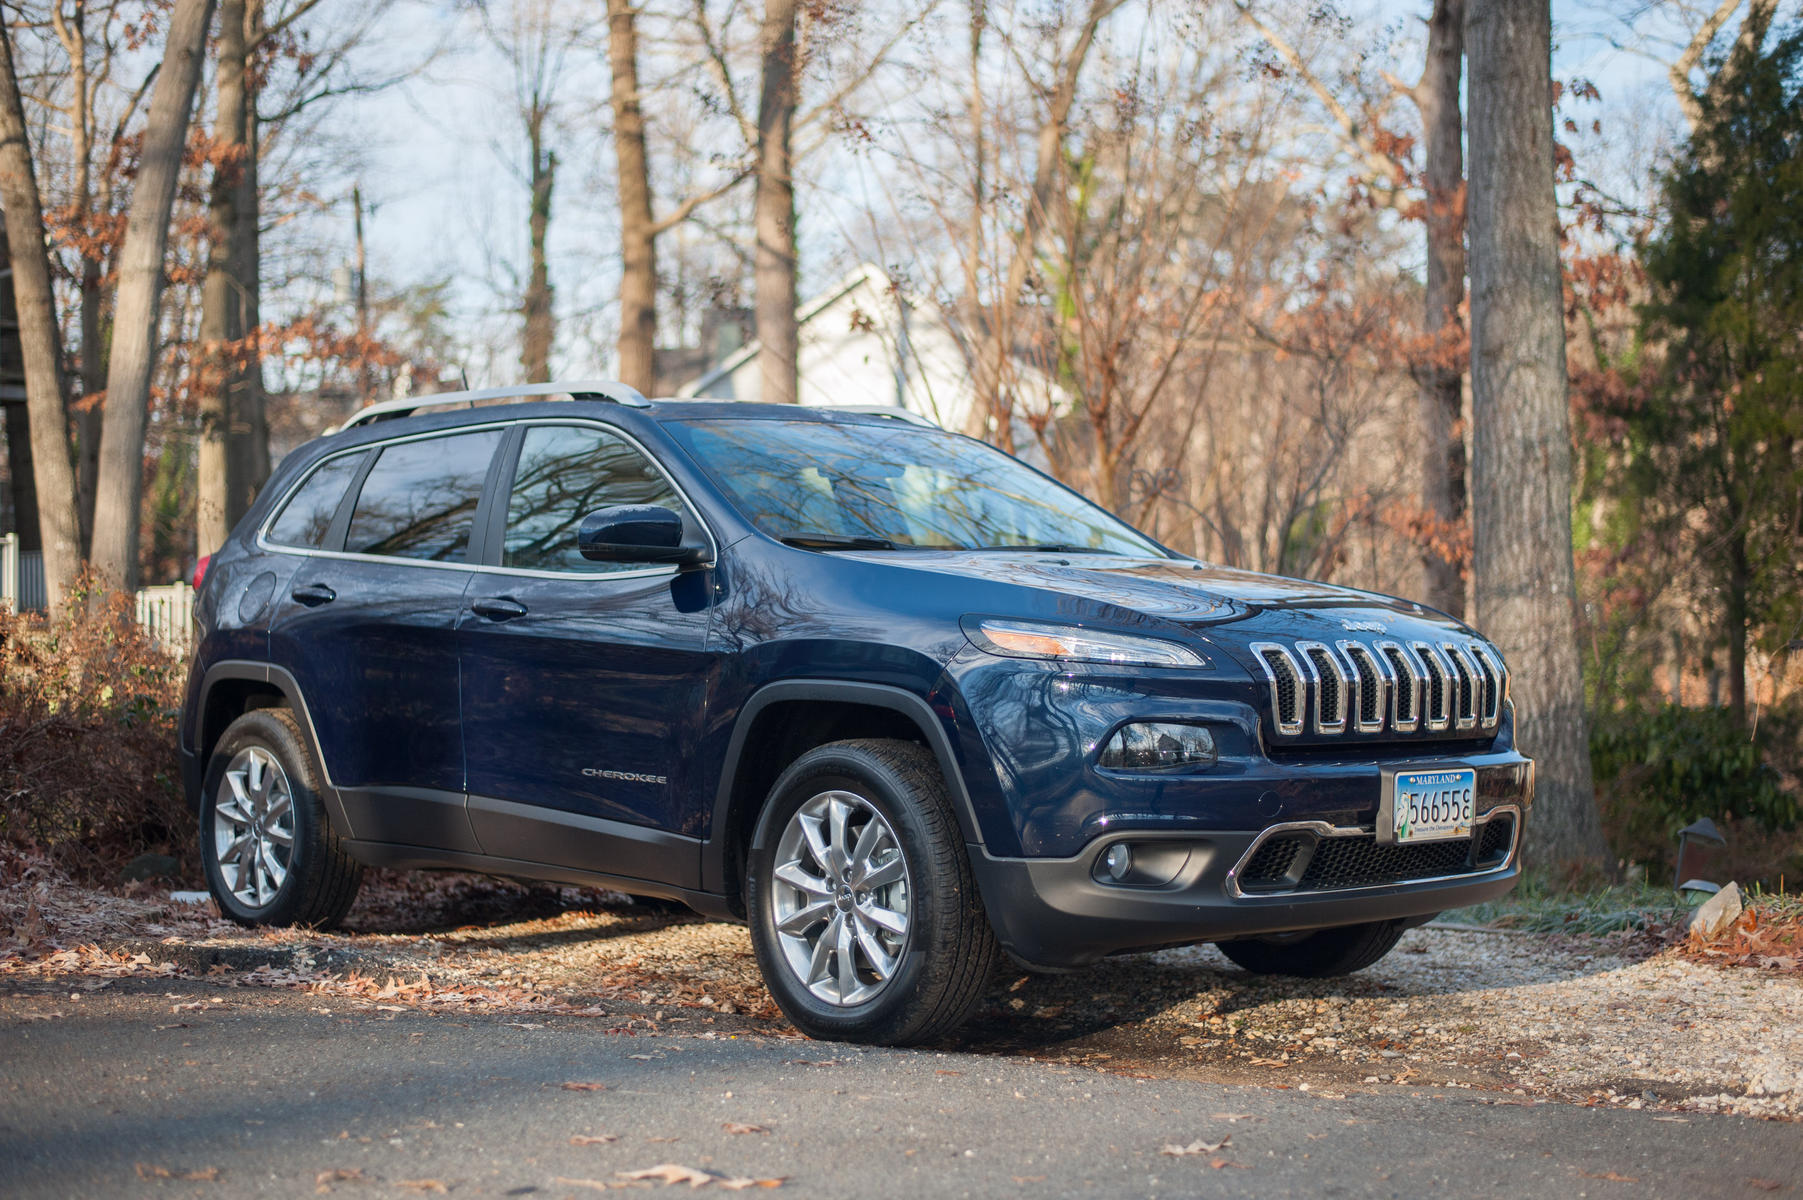 true blue cherokee thread - 2014+ jeep cherokee forums